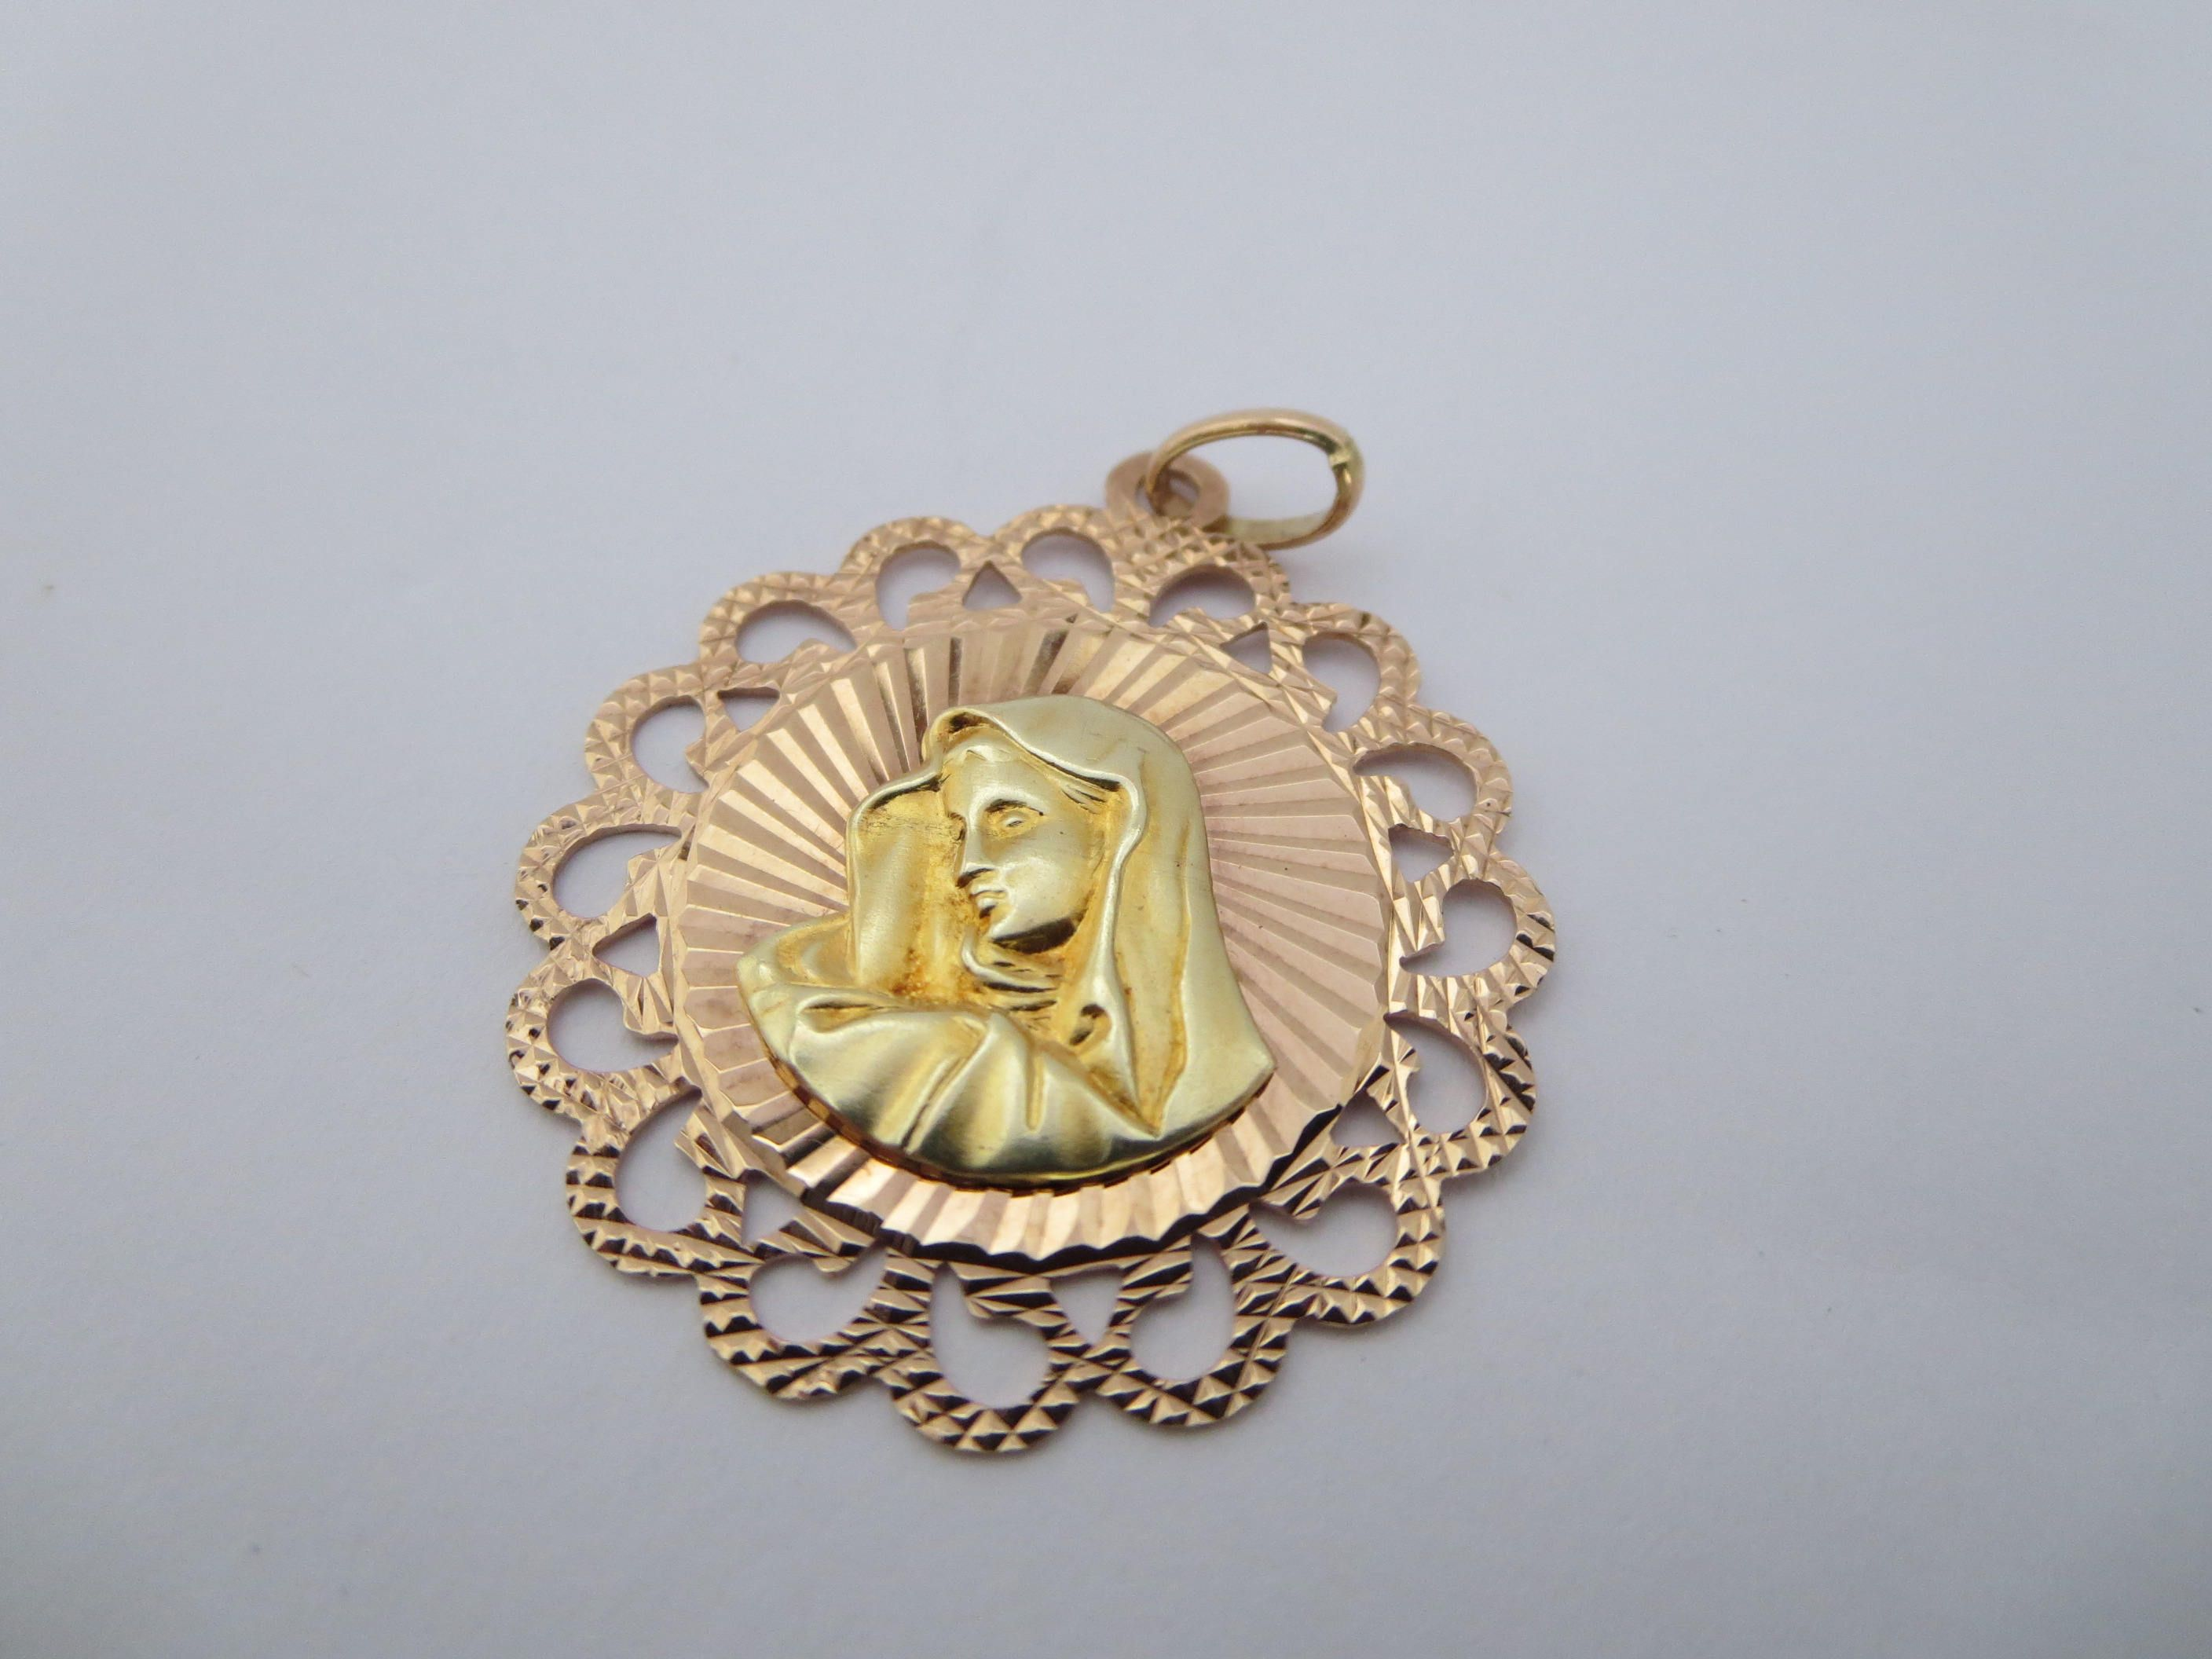 RELIGIOUS JEWELRY 14k gold 10k Virgin Mary Medal Medaillon